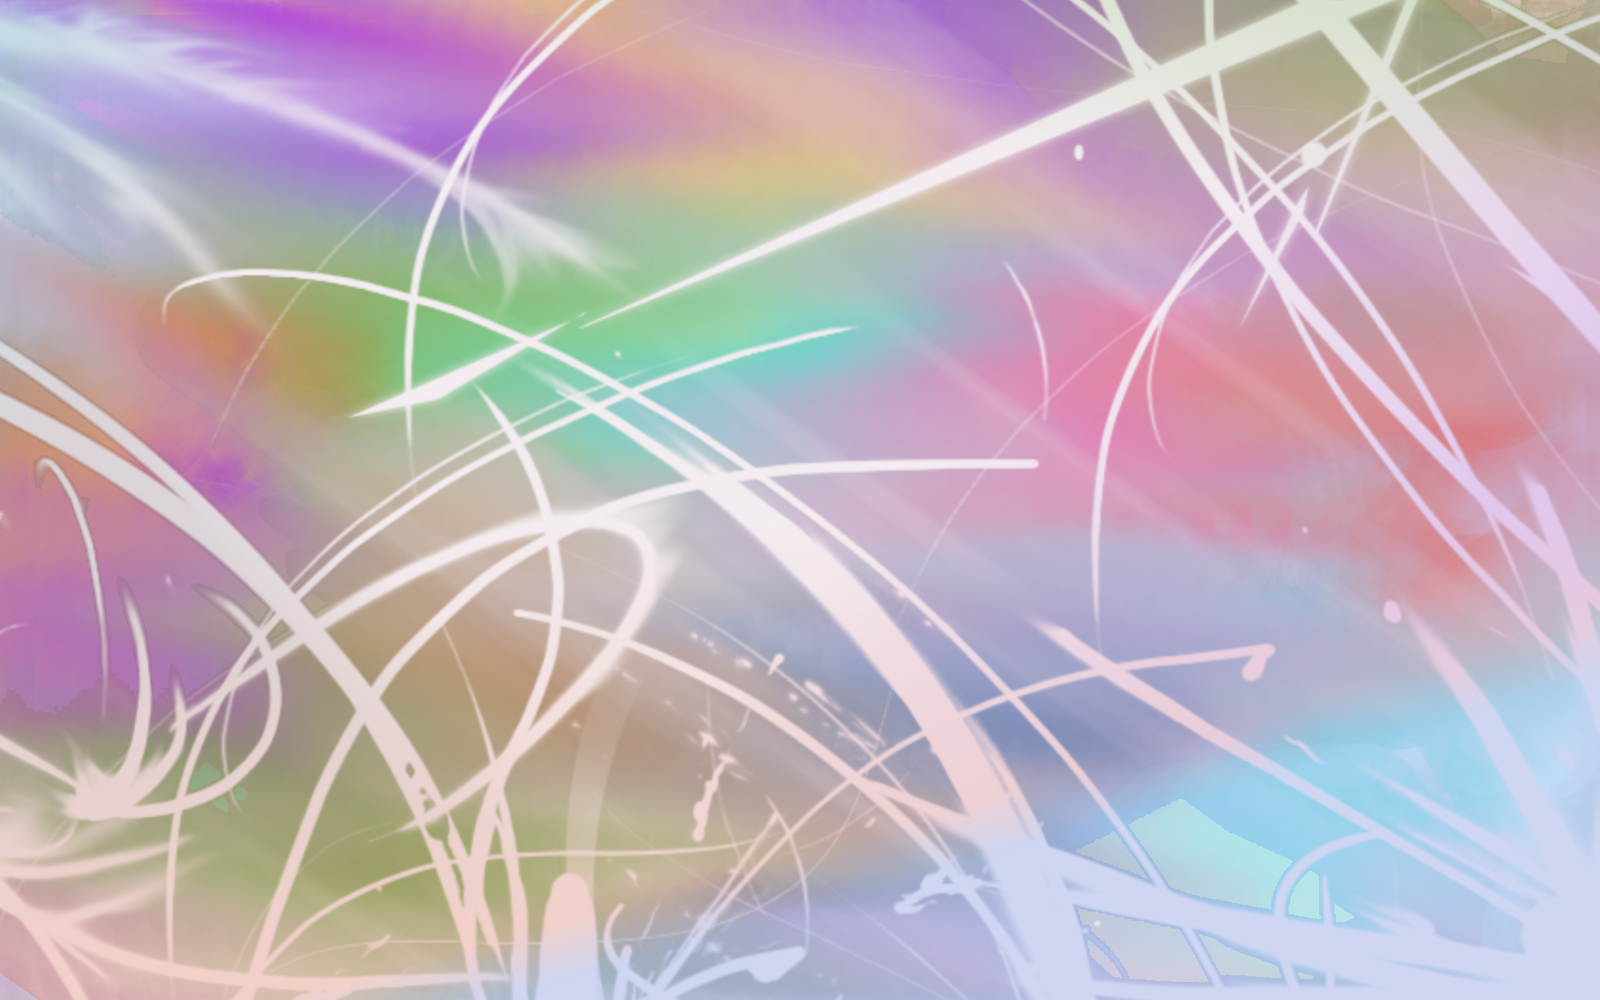 GIMP Background by epscevy 1600x1000